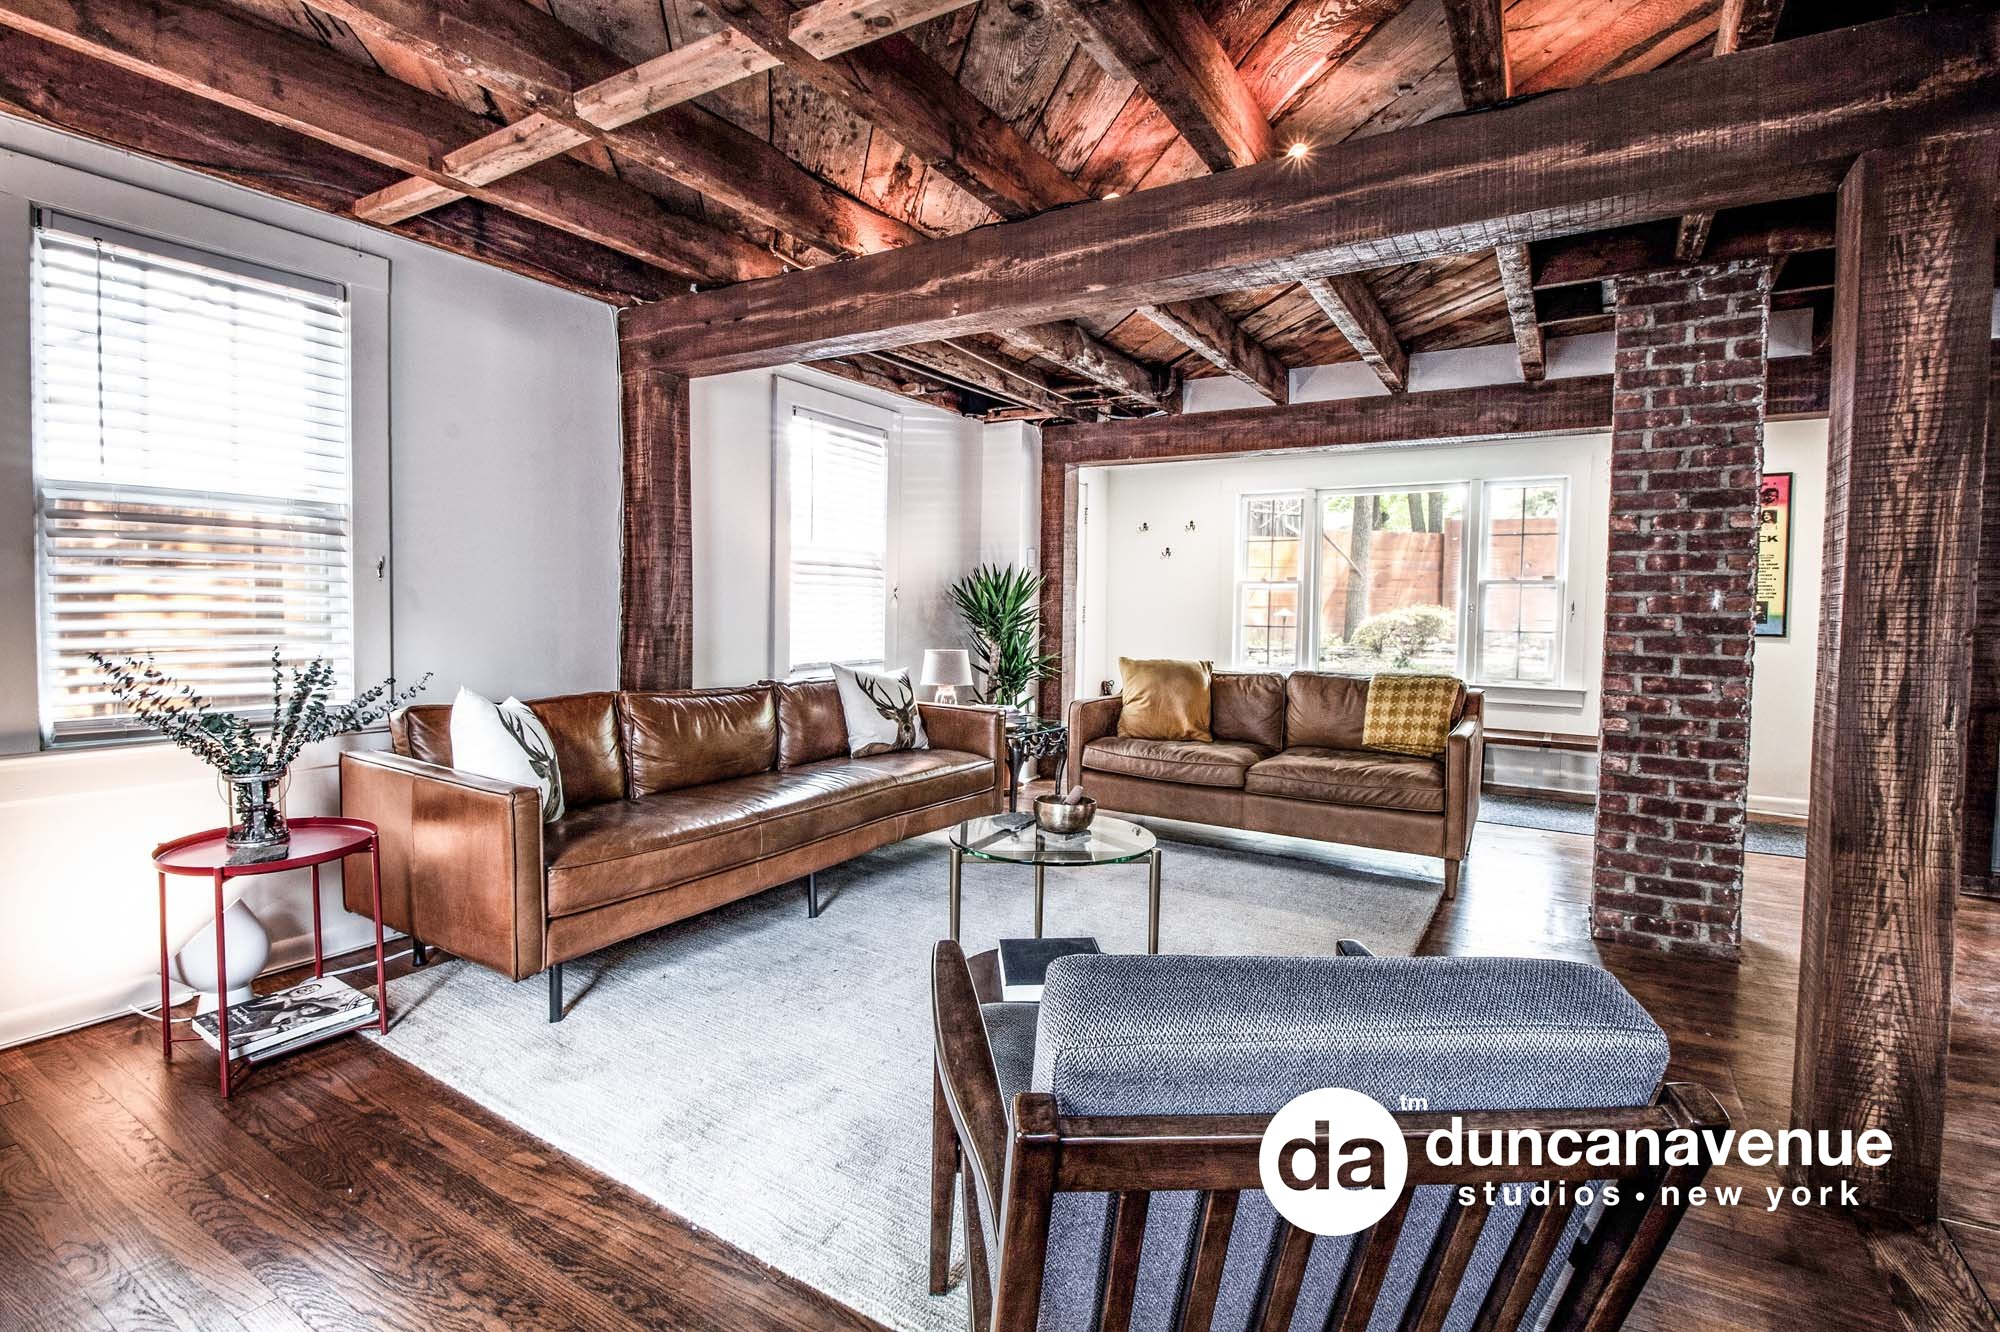 Modern Rustic Airbnb Real Estate Photography in Woodstock, NY – Duncan Avenue Studios